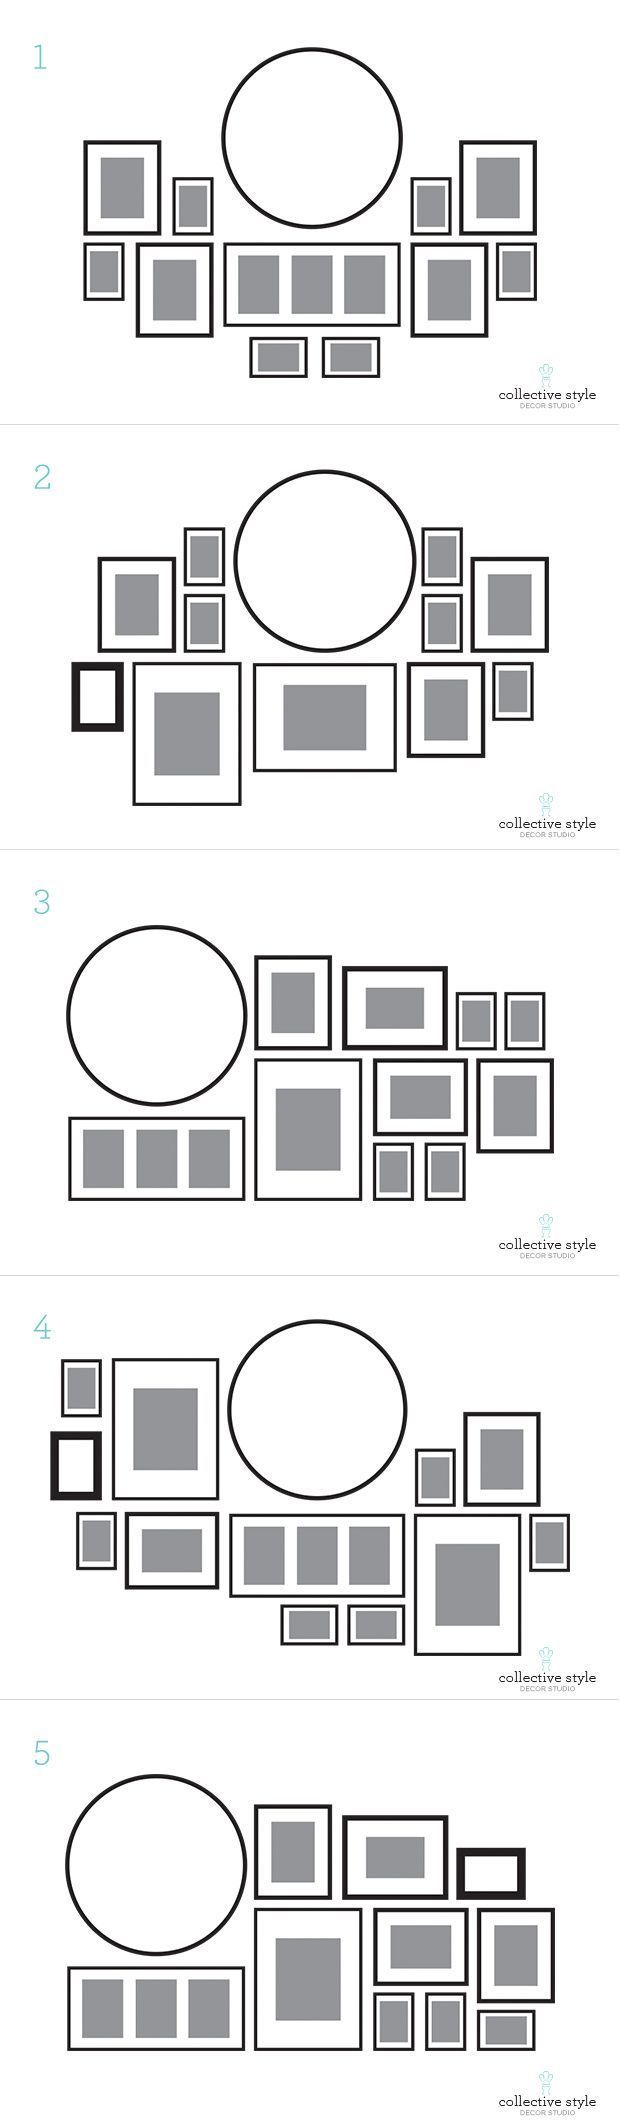 17 meilleures id es propos de arrangements de cadre de mur sur pinterest dispositions de. Black Bedroom Furniture Sets. Home Design Ideas